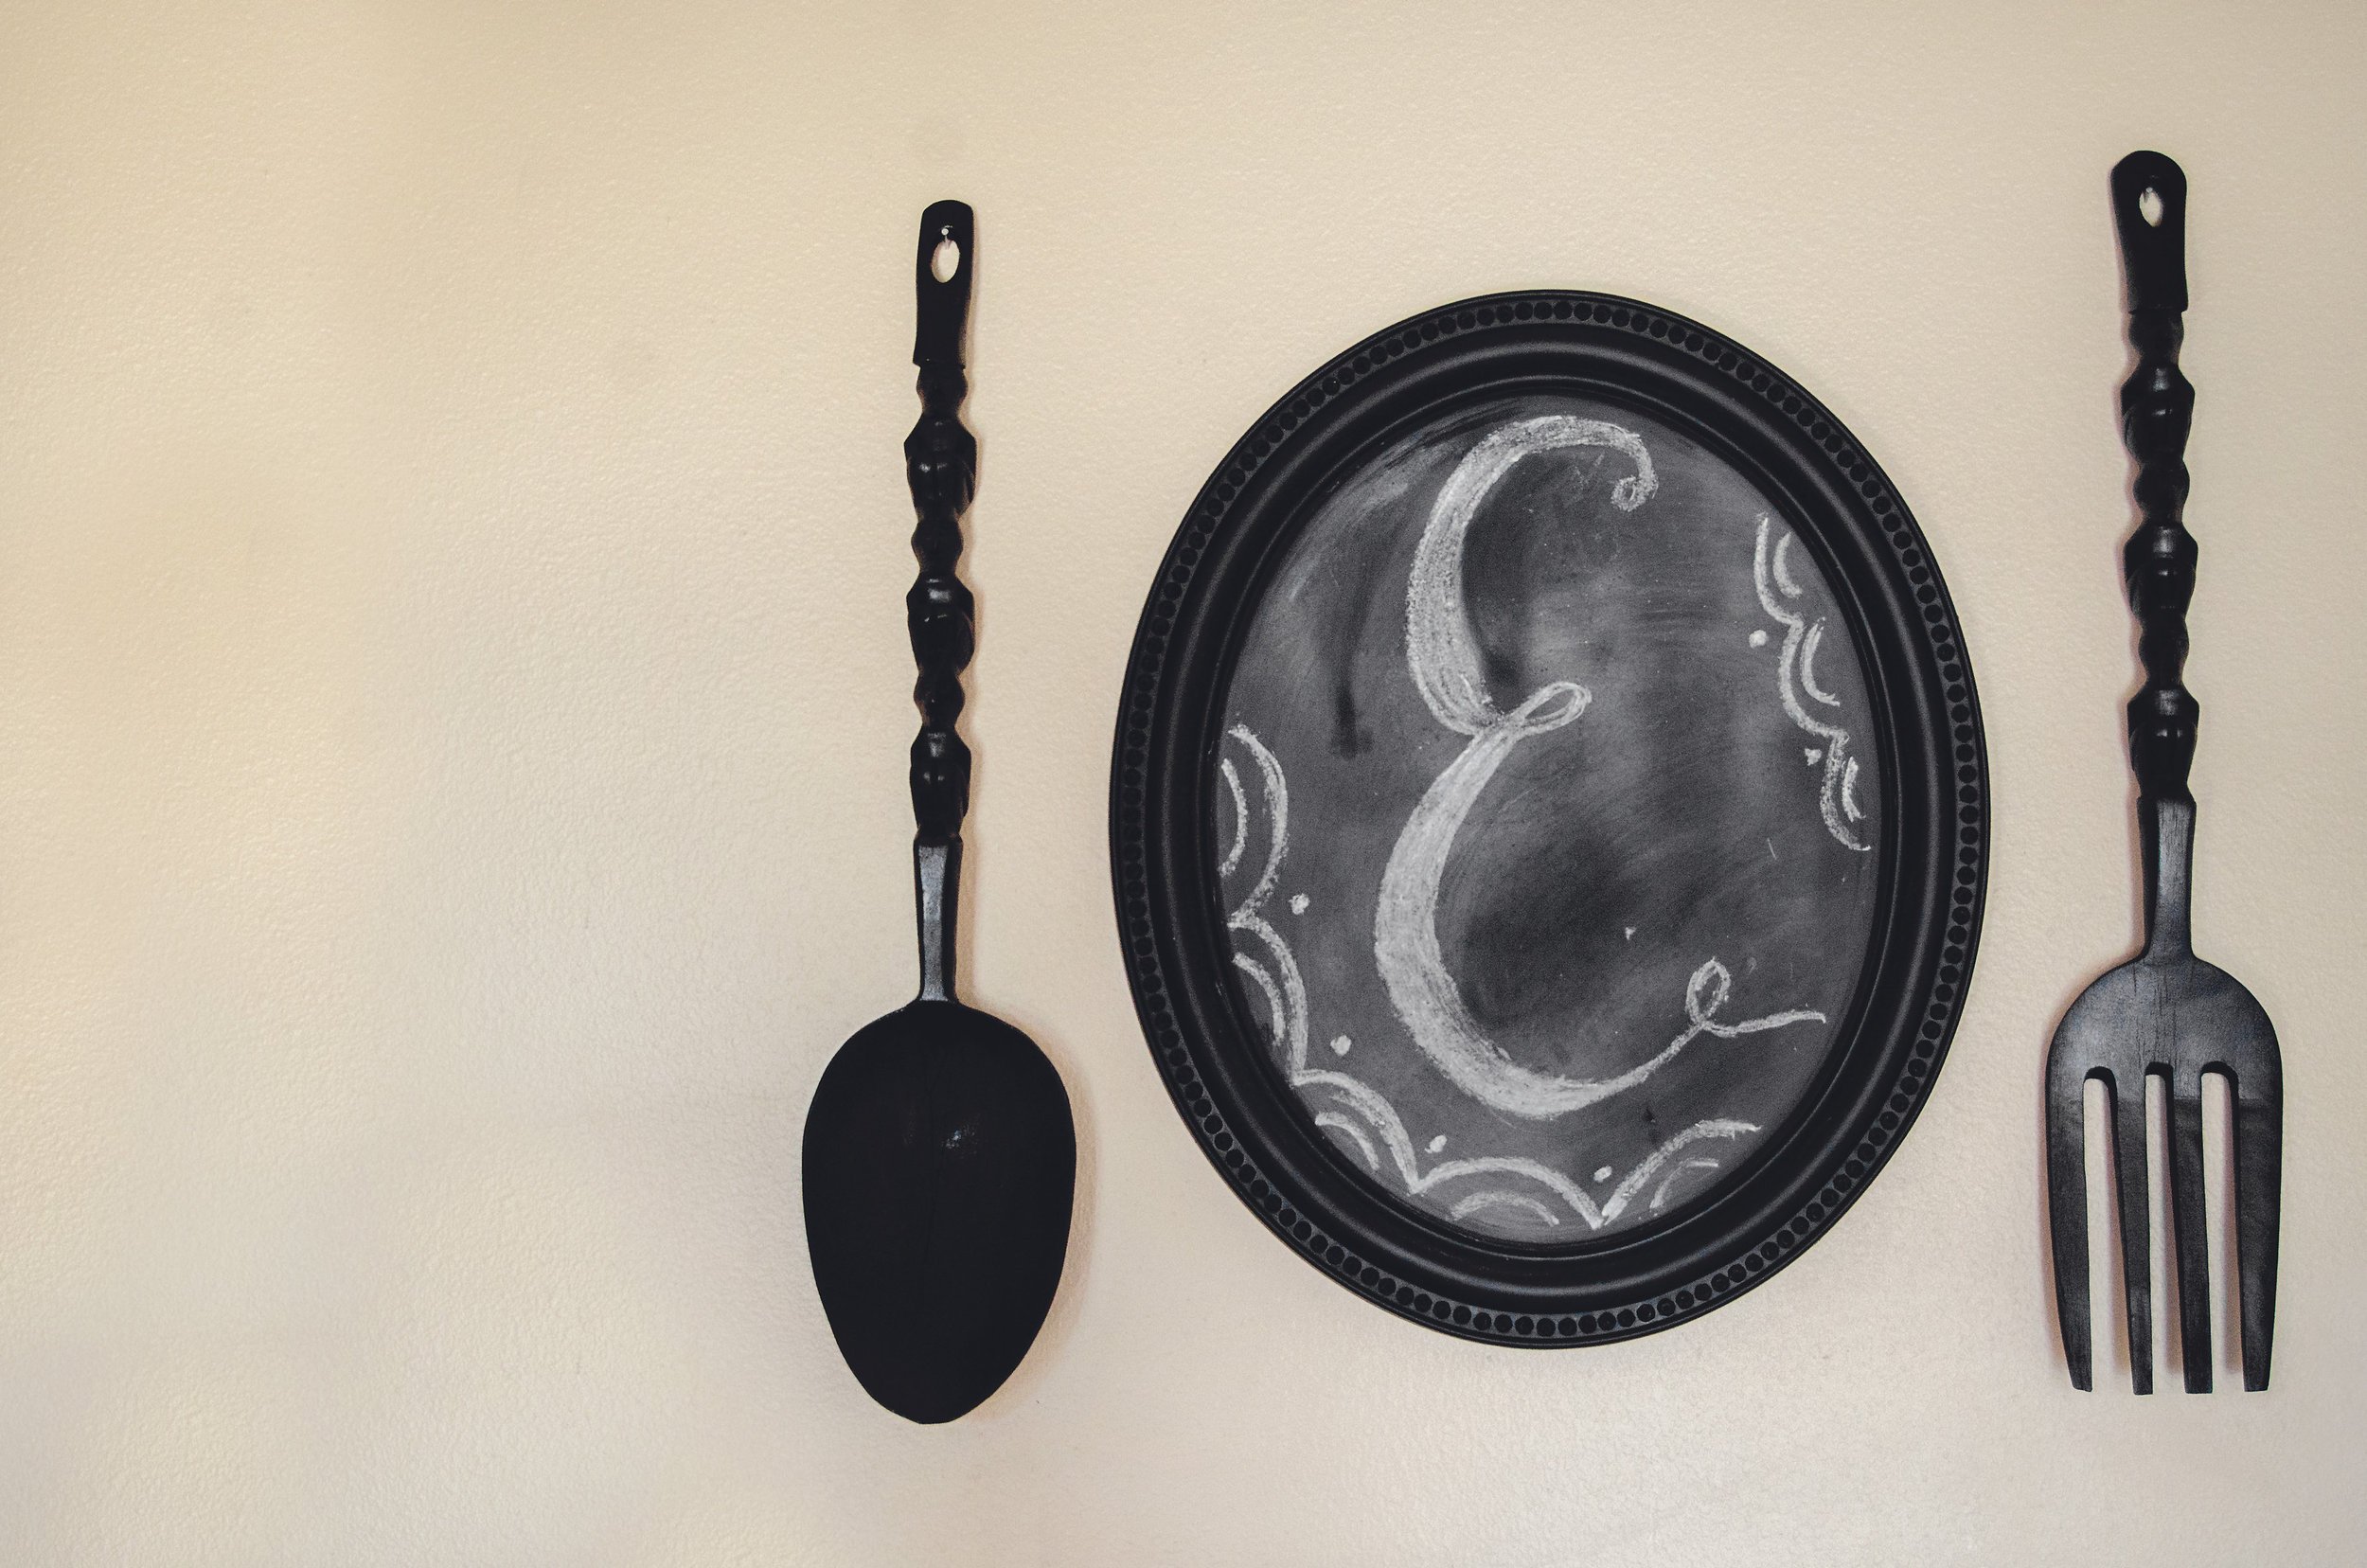 Over sized fork and spoon with a chalkboard plate. H.Prall & Co. | hprallandco.com